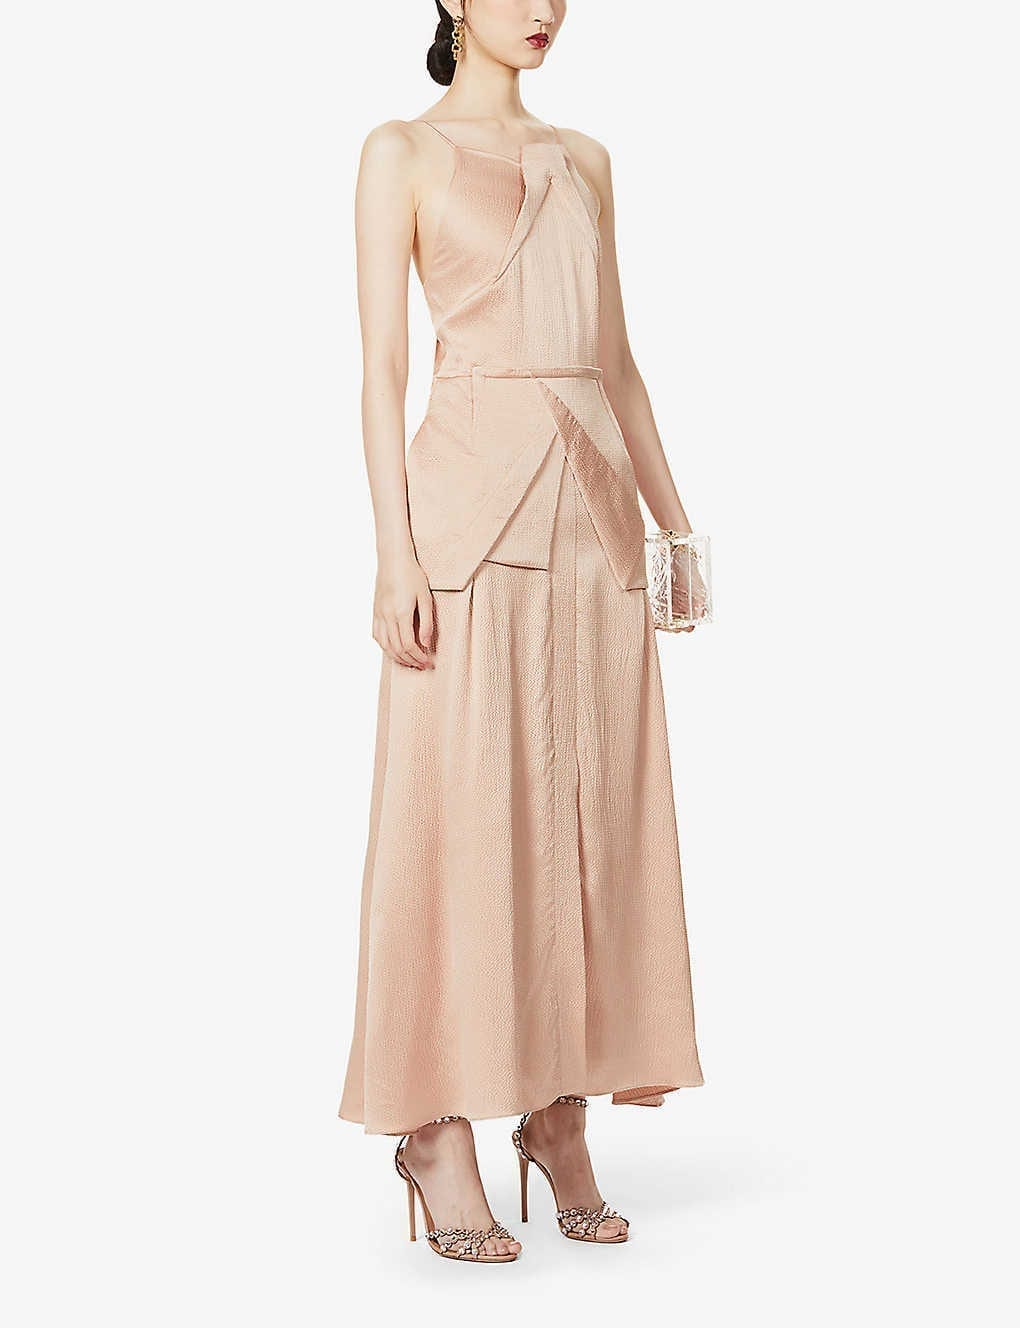 ROLAND MOURET Chora Asymmetric Silk Midi Dress